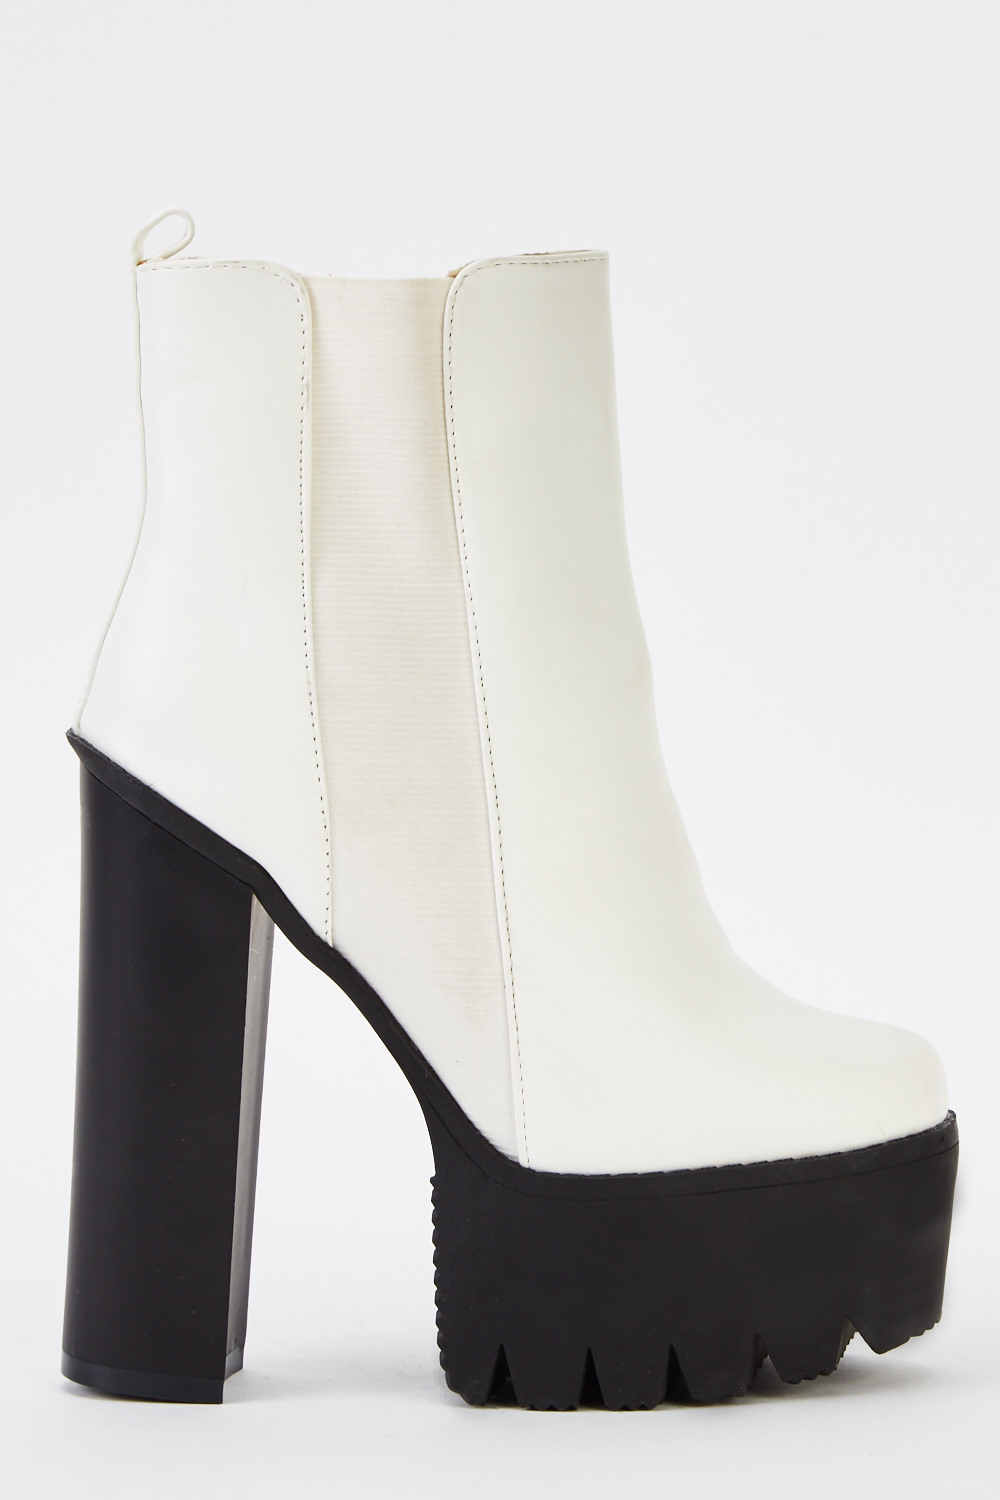 White Chunky Heeled Boots - Just £5